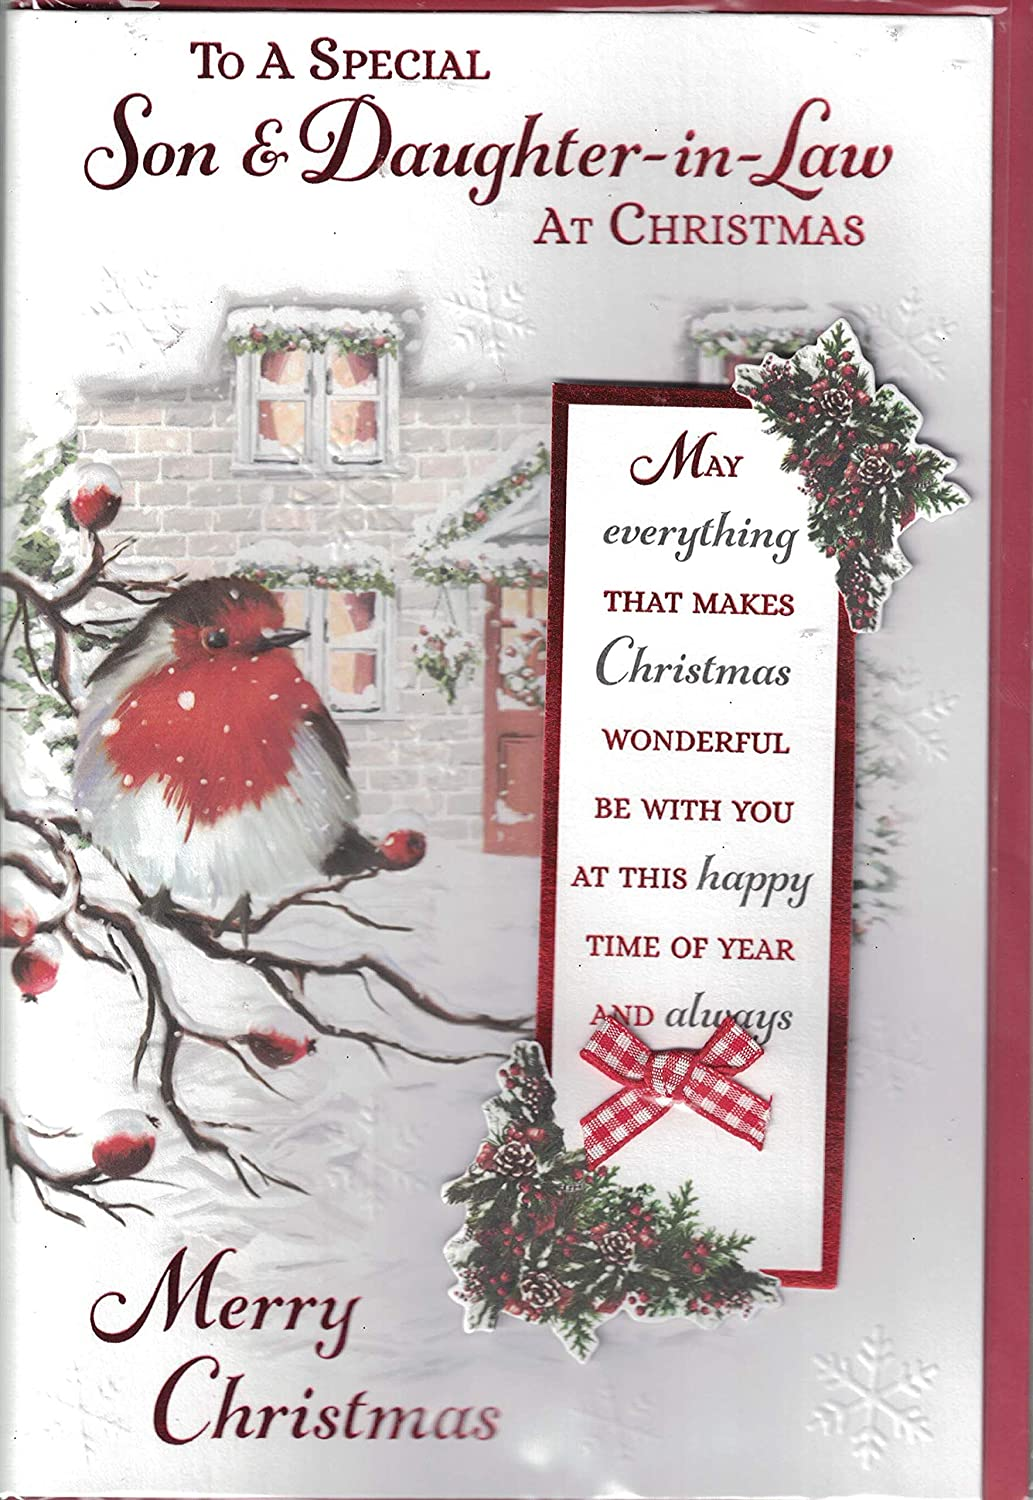 Son And Daughter-in-Law Christmas Card ~ For A Special Son ...